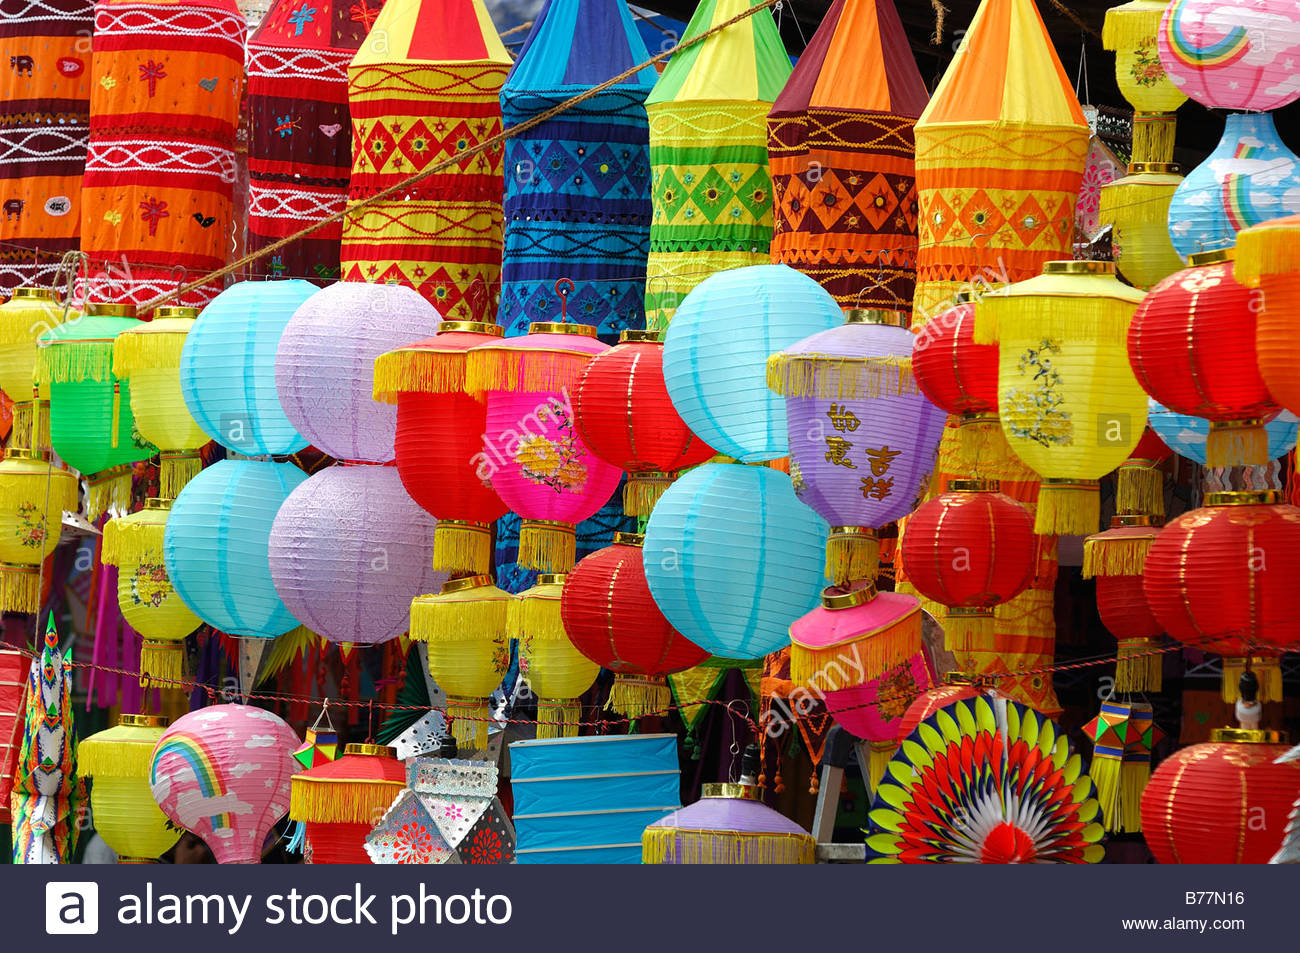 Festival of lights diwali lanterns kandil for sale stock for Photographs for sale online